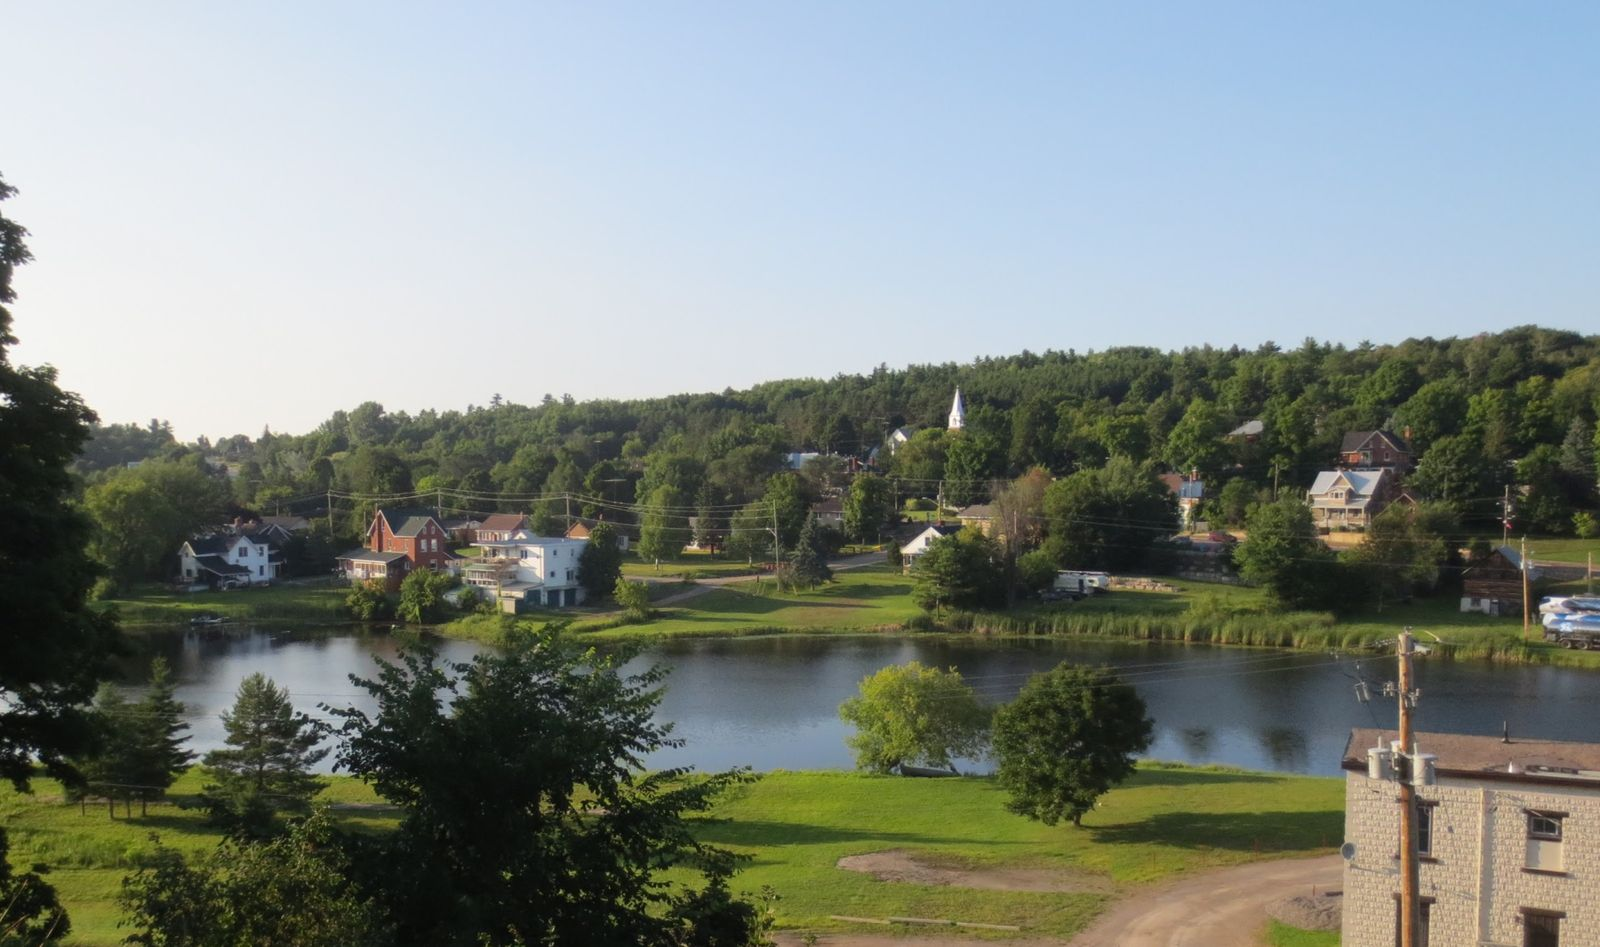 The Town of Eganville